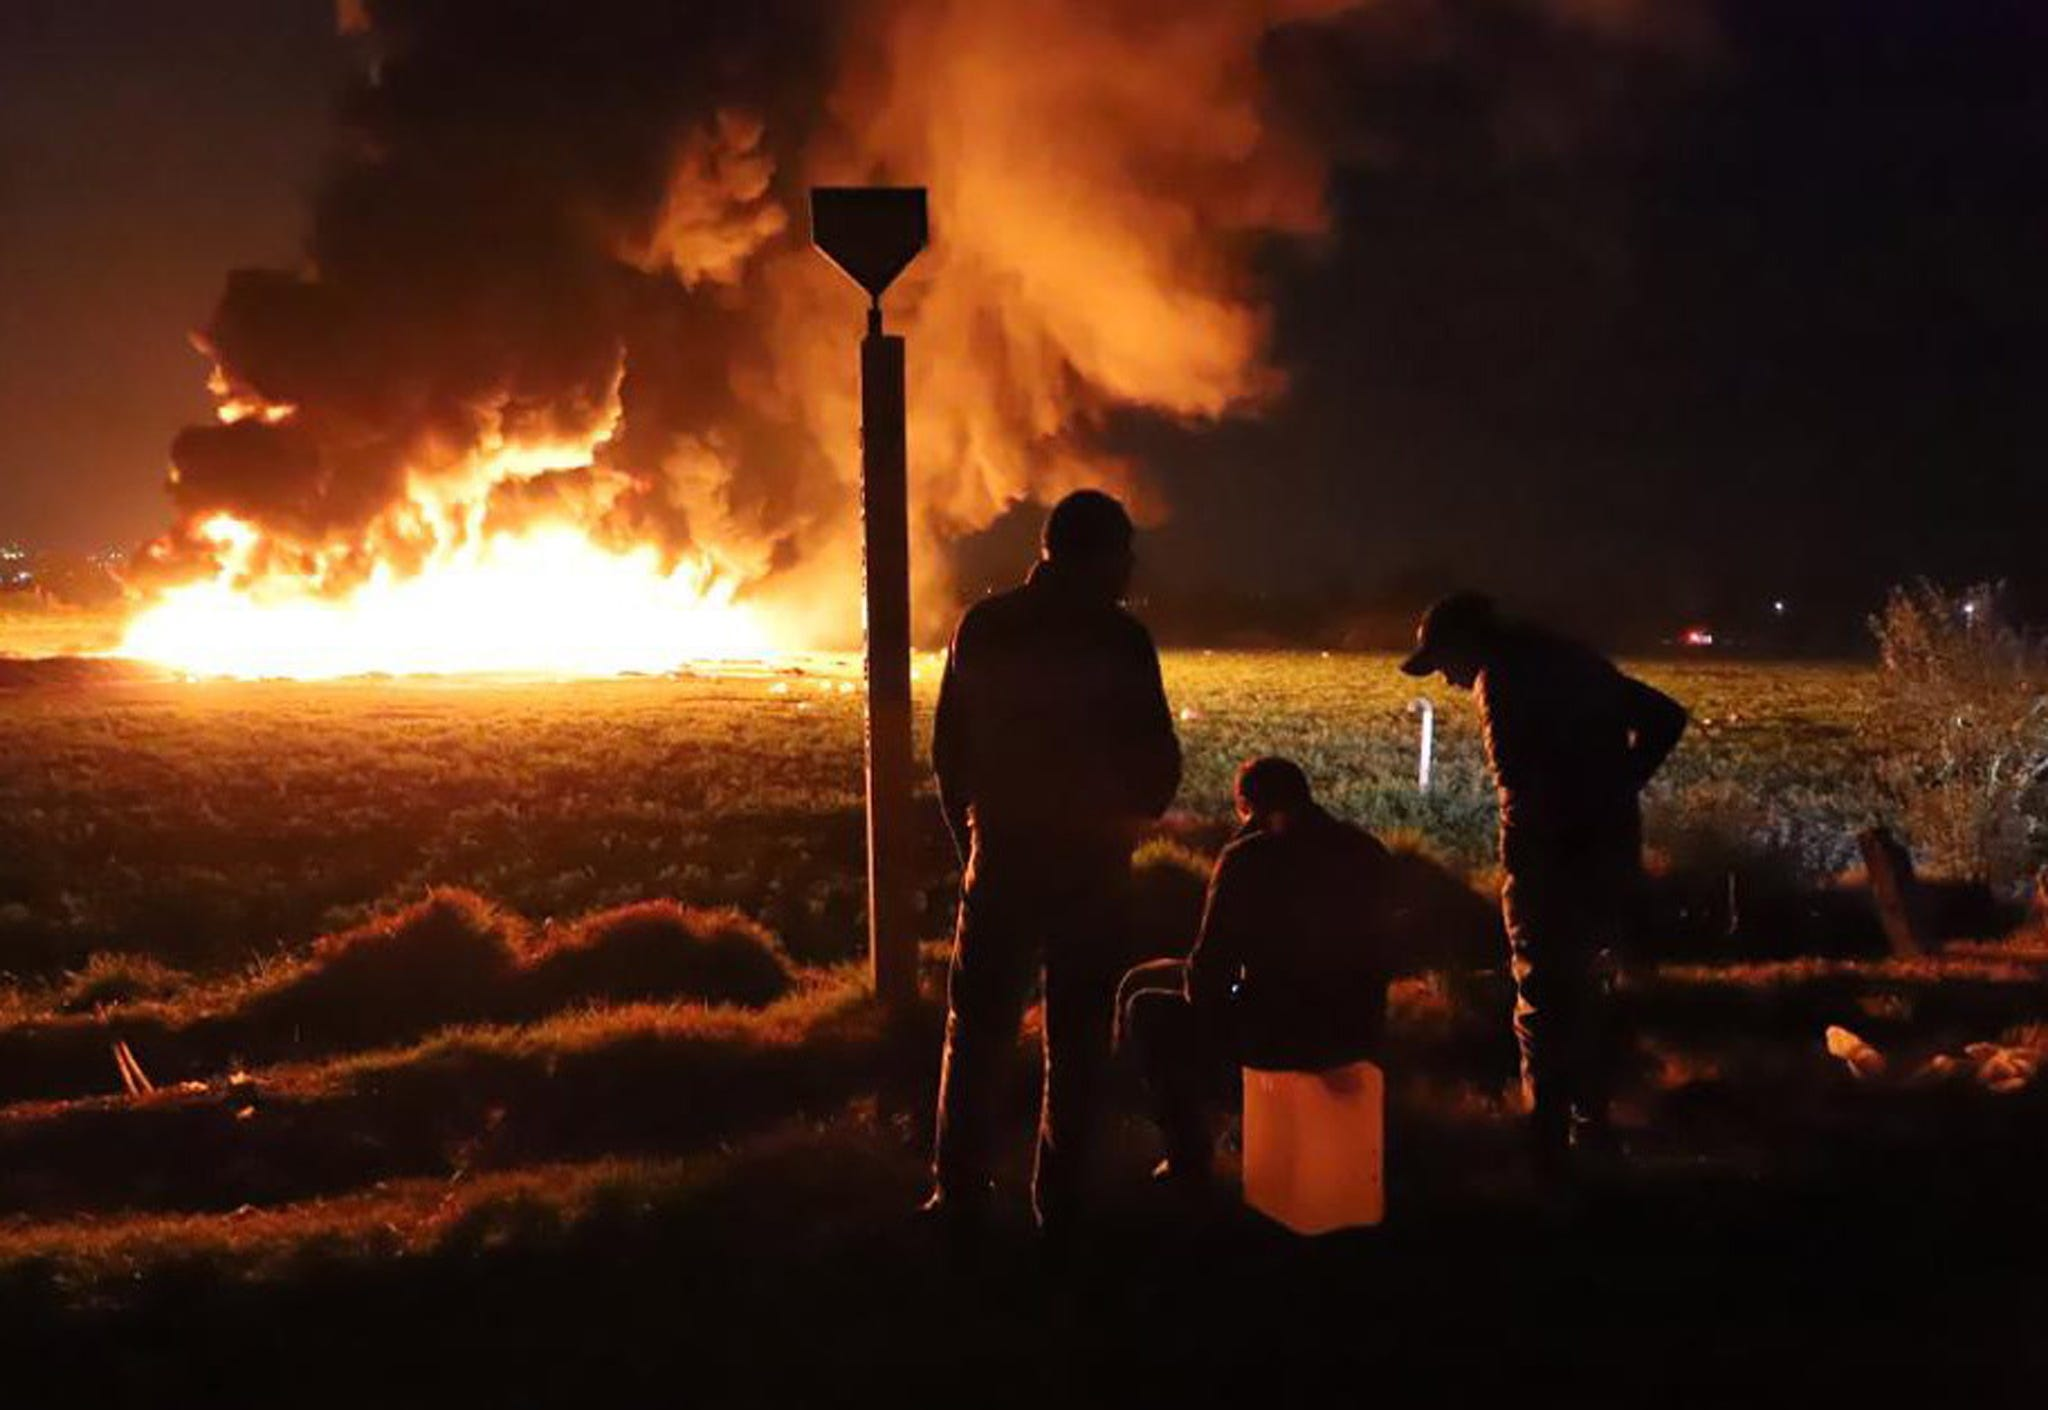 People are waiting in front of a wall of fire after an explosion of an ill equal loss on Mexican oil company Pemex pipeline in Tlahuilipan, state of Hidalgo, Mexico.